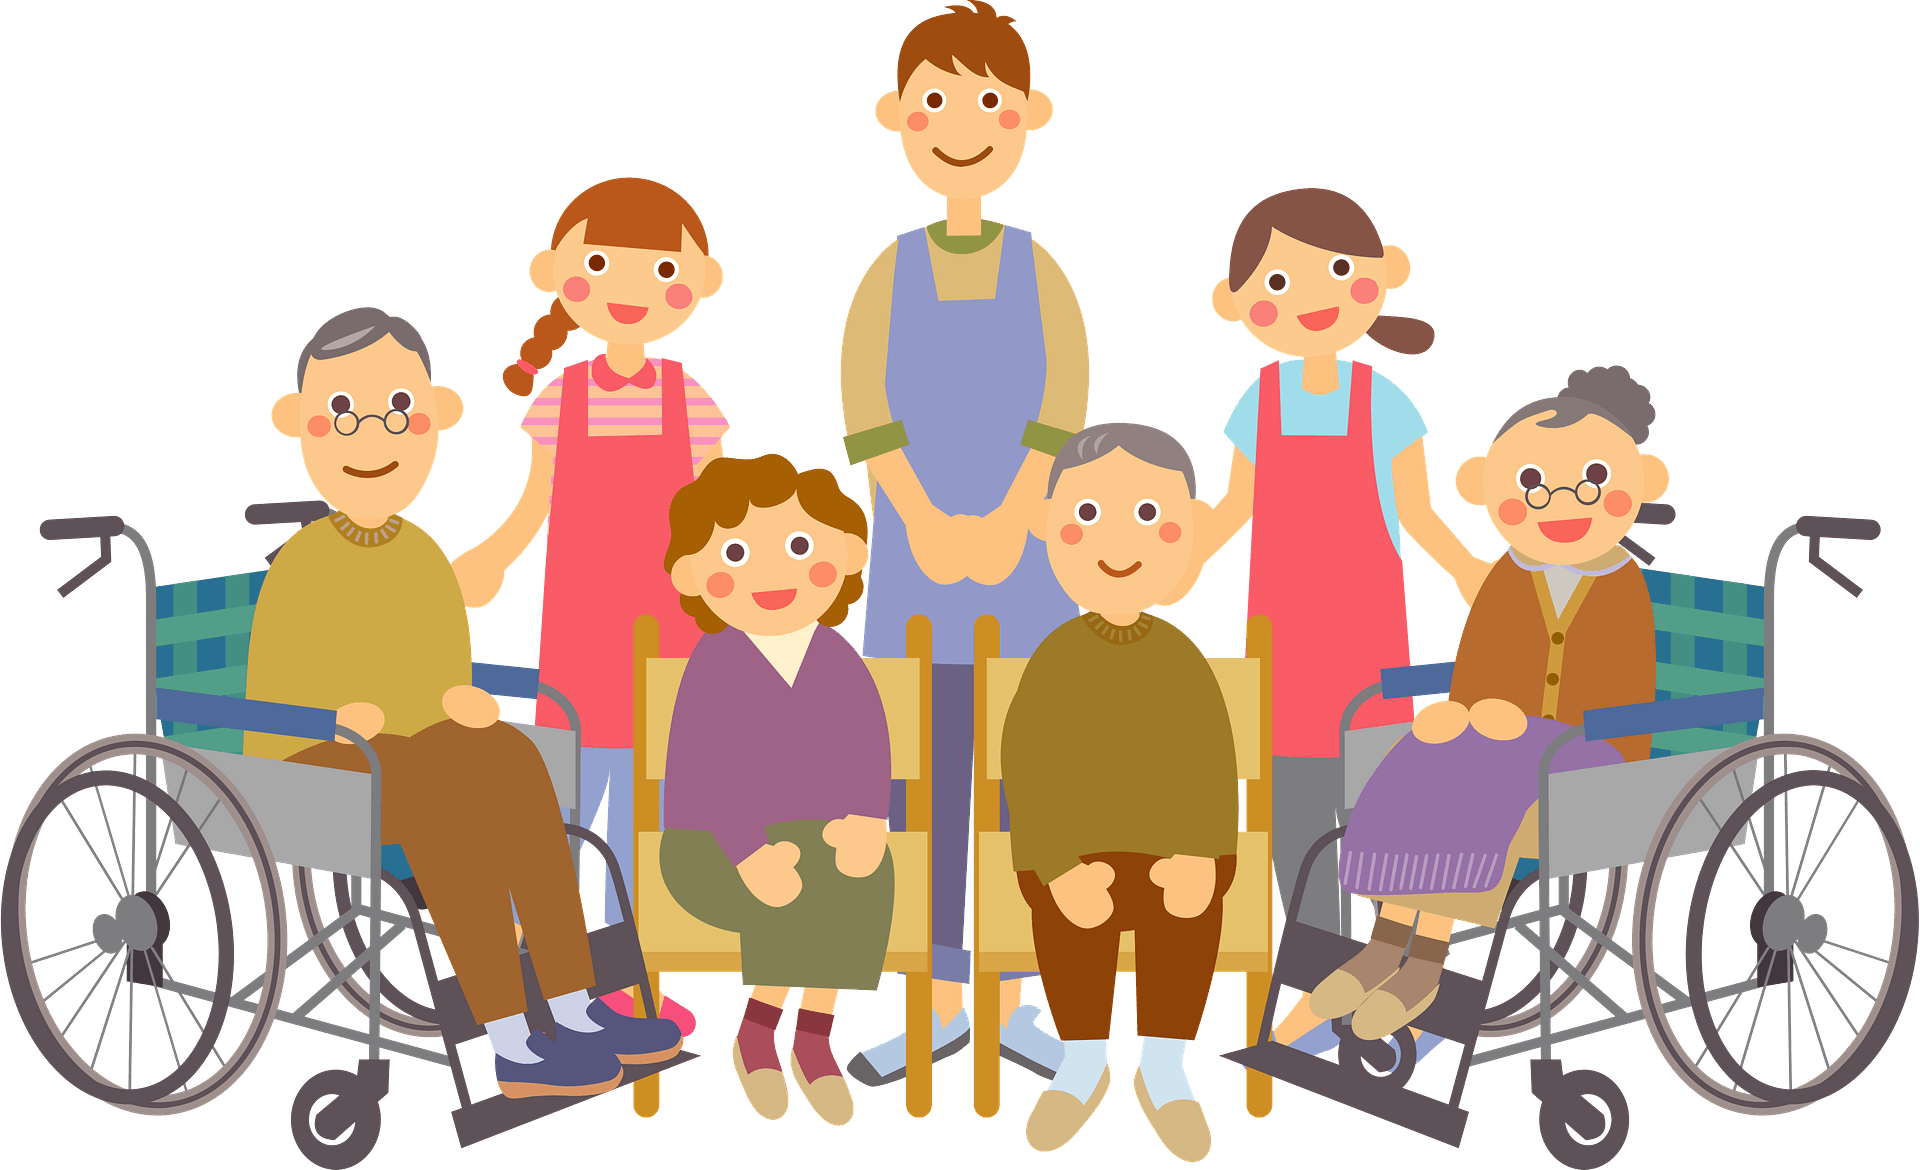 Elderly Care In A Nursing Home Clipart Free Download Transparent Png Creazilla